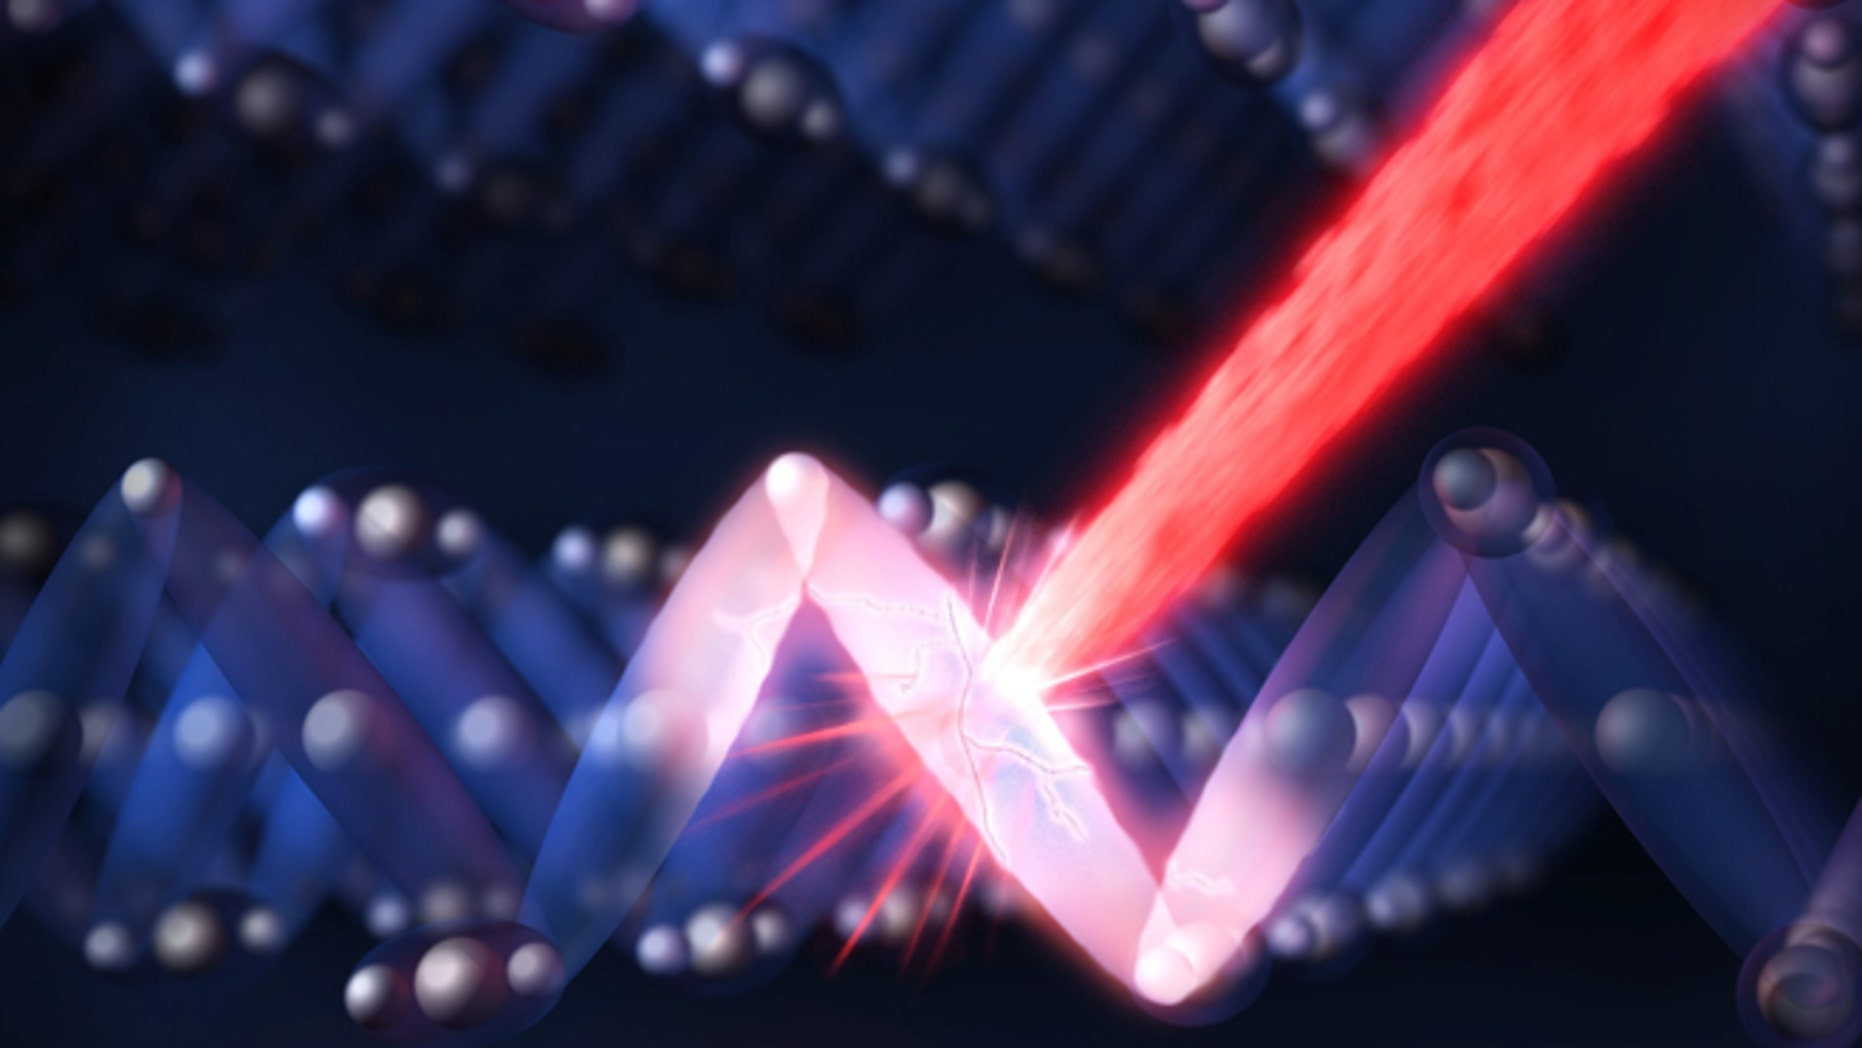 An optical laser pulse (the red streak) shatters the ordered electronic structure (blue) in an insulating sample of magnetite, switching the material to electrically conducting (red) in one trillionth of a second.